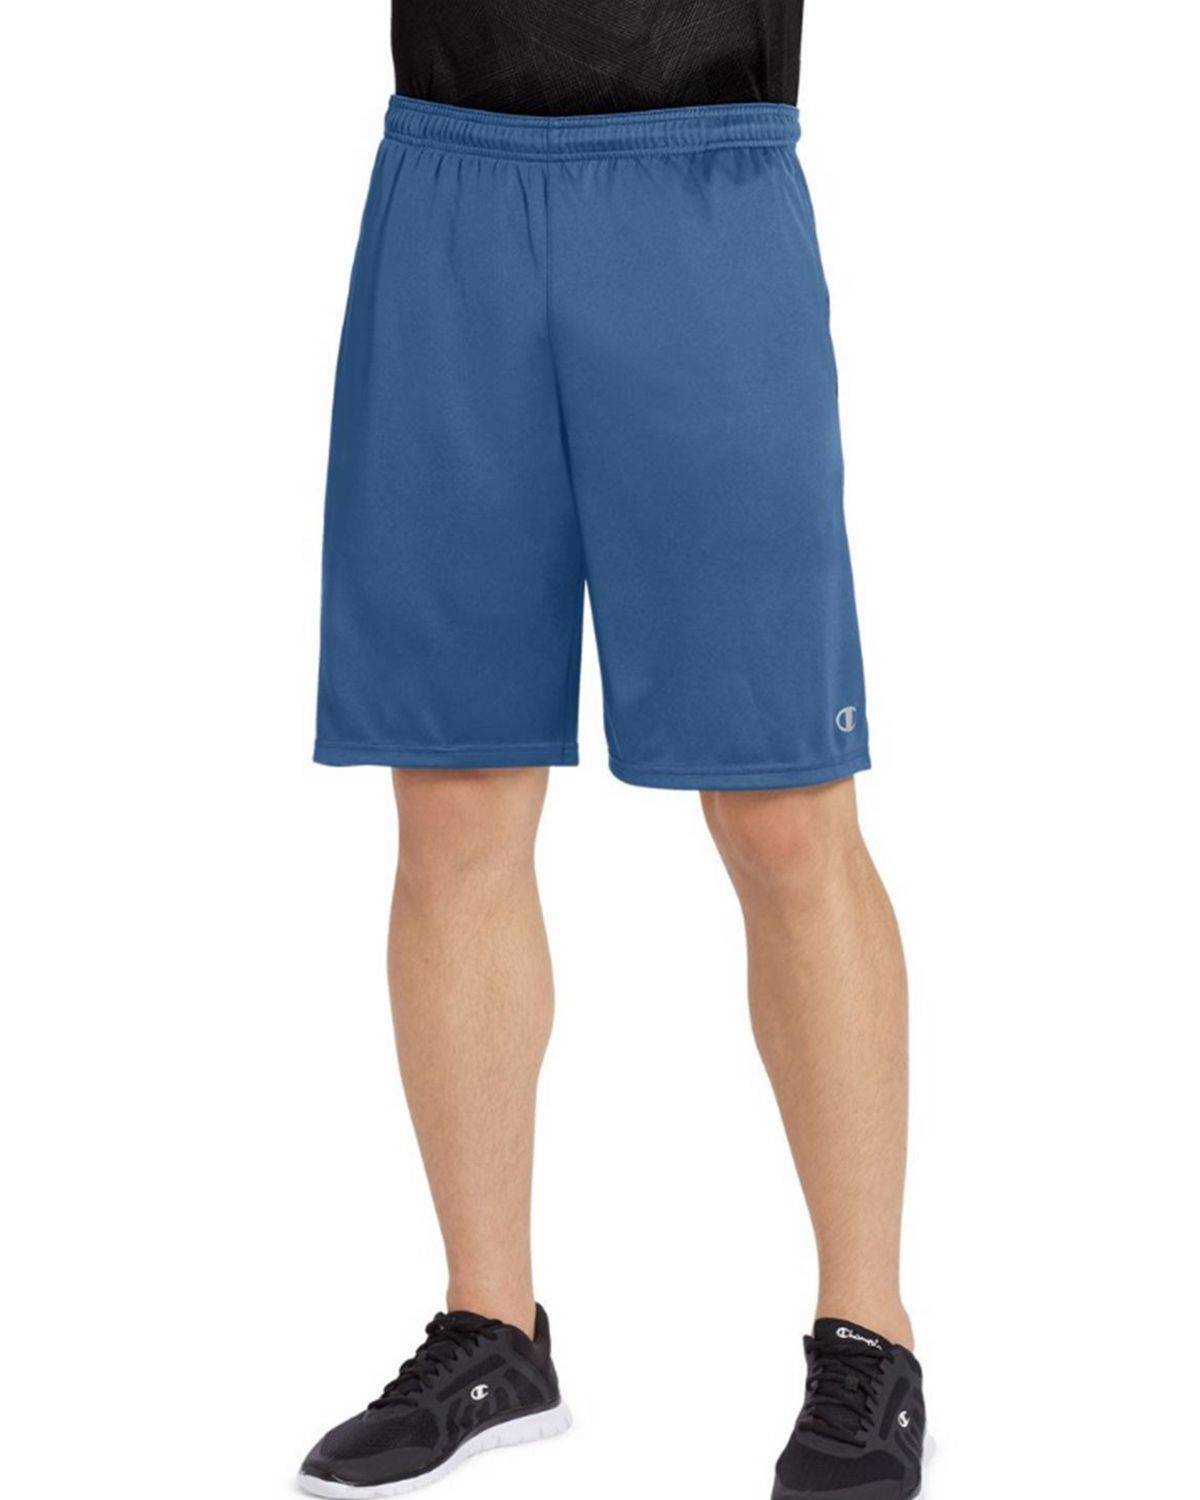 Champion 88125 Vapor Mens Shorts - Seabottom Blue/Navy - M 88125